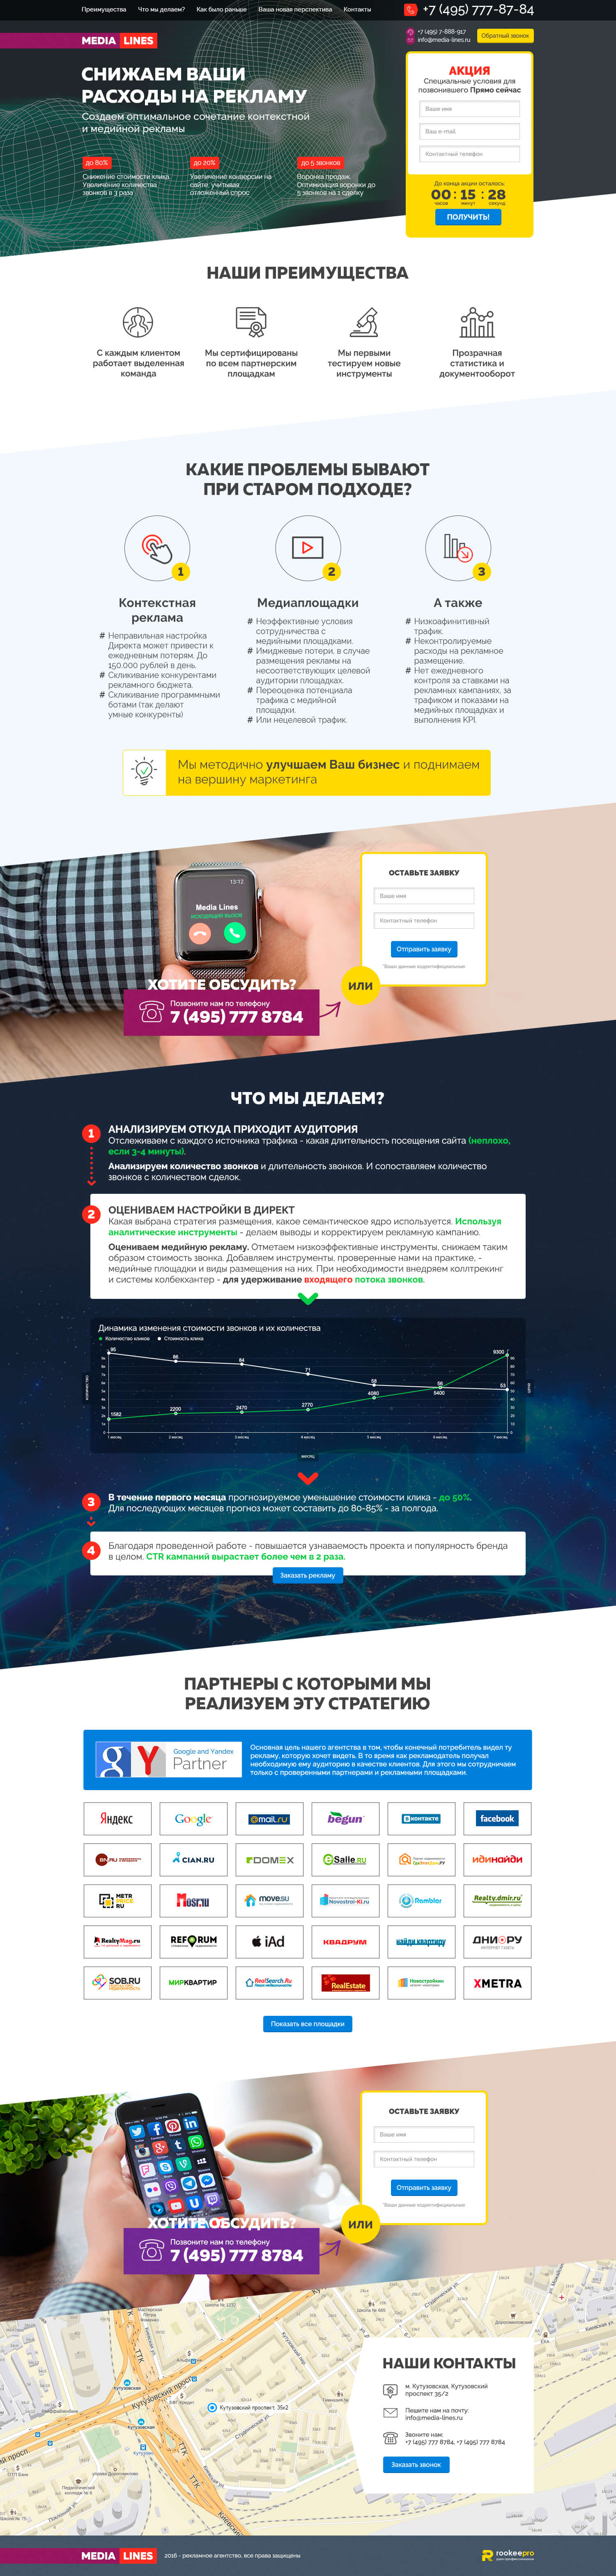 Landing Page - Media Lines